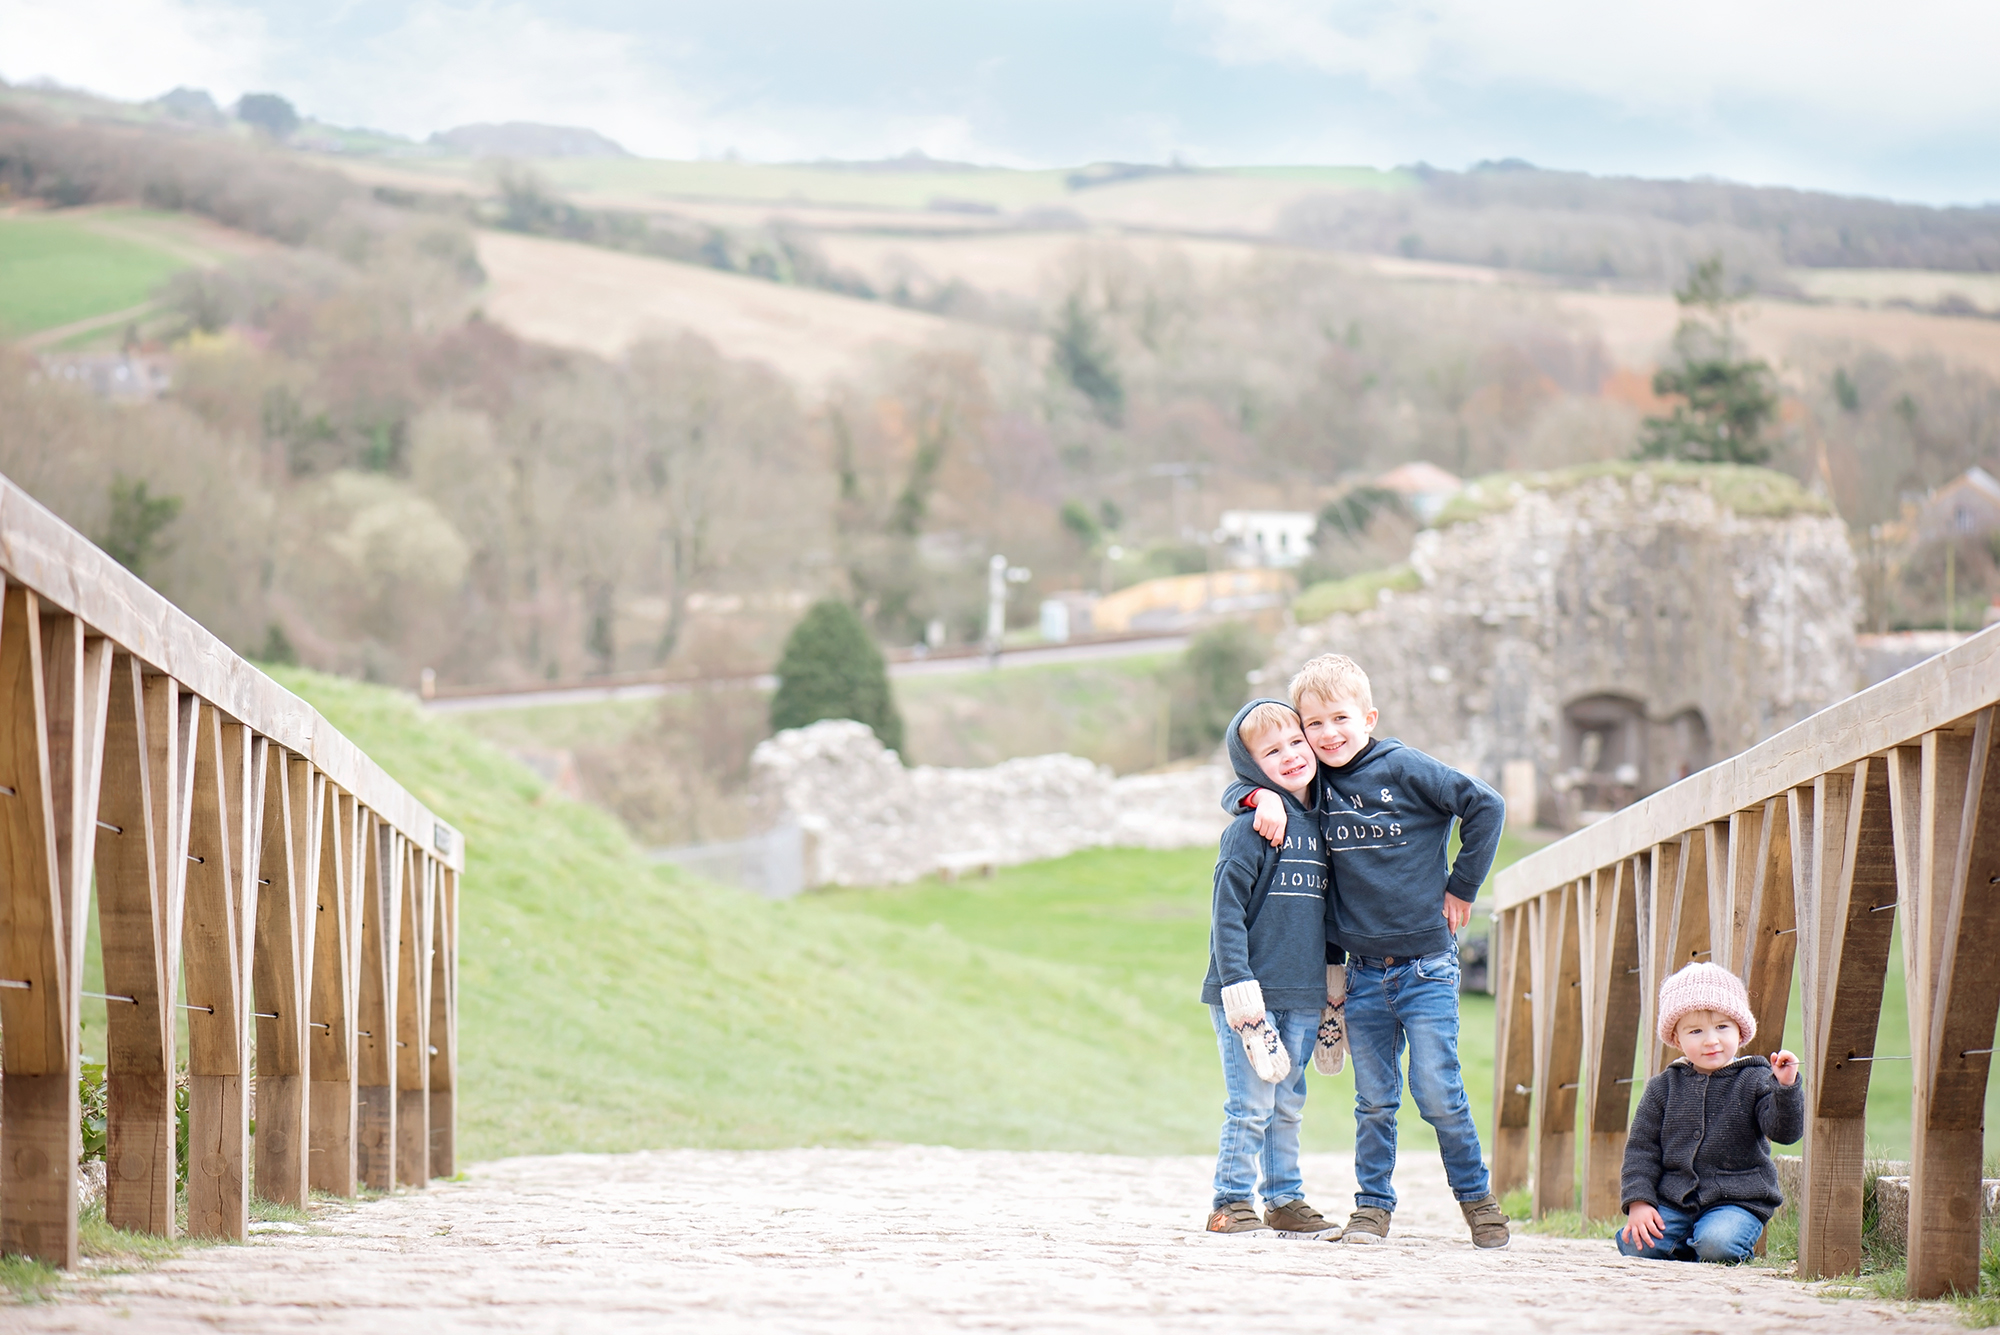 IN THE FAMOUS STEPS OF ENID BLYTON'S FIVE – A TRIP TO CORFE CASTLE